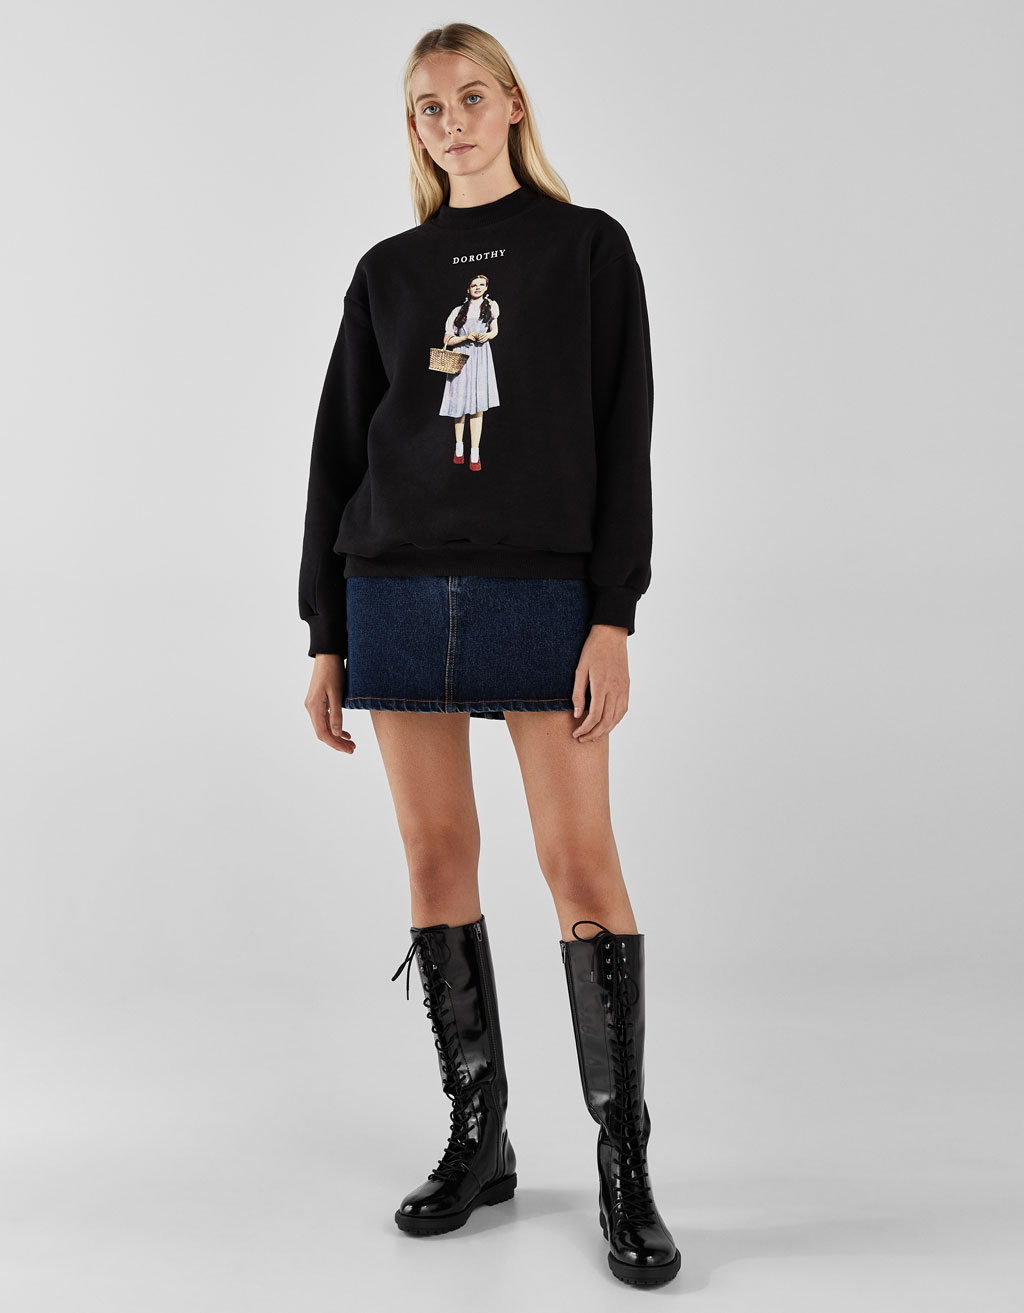 Wizard of Oz sweatshirt